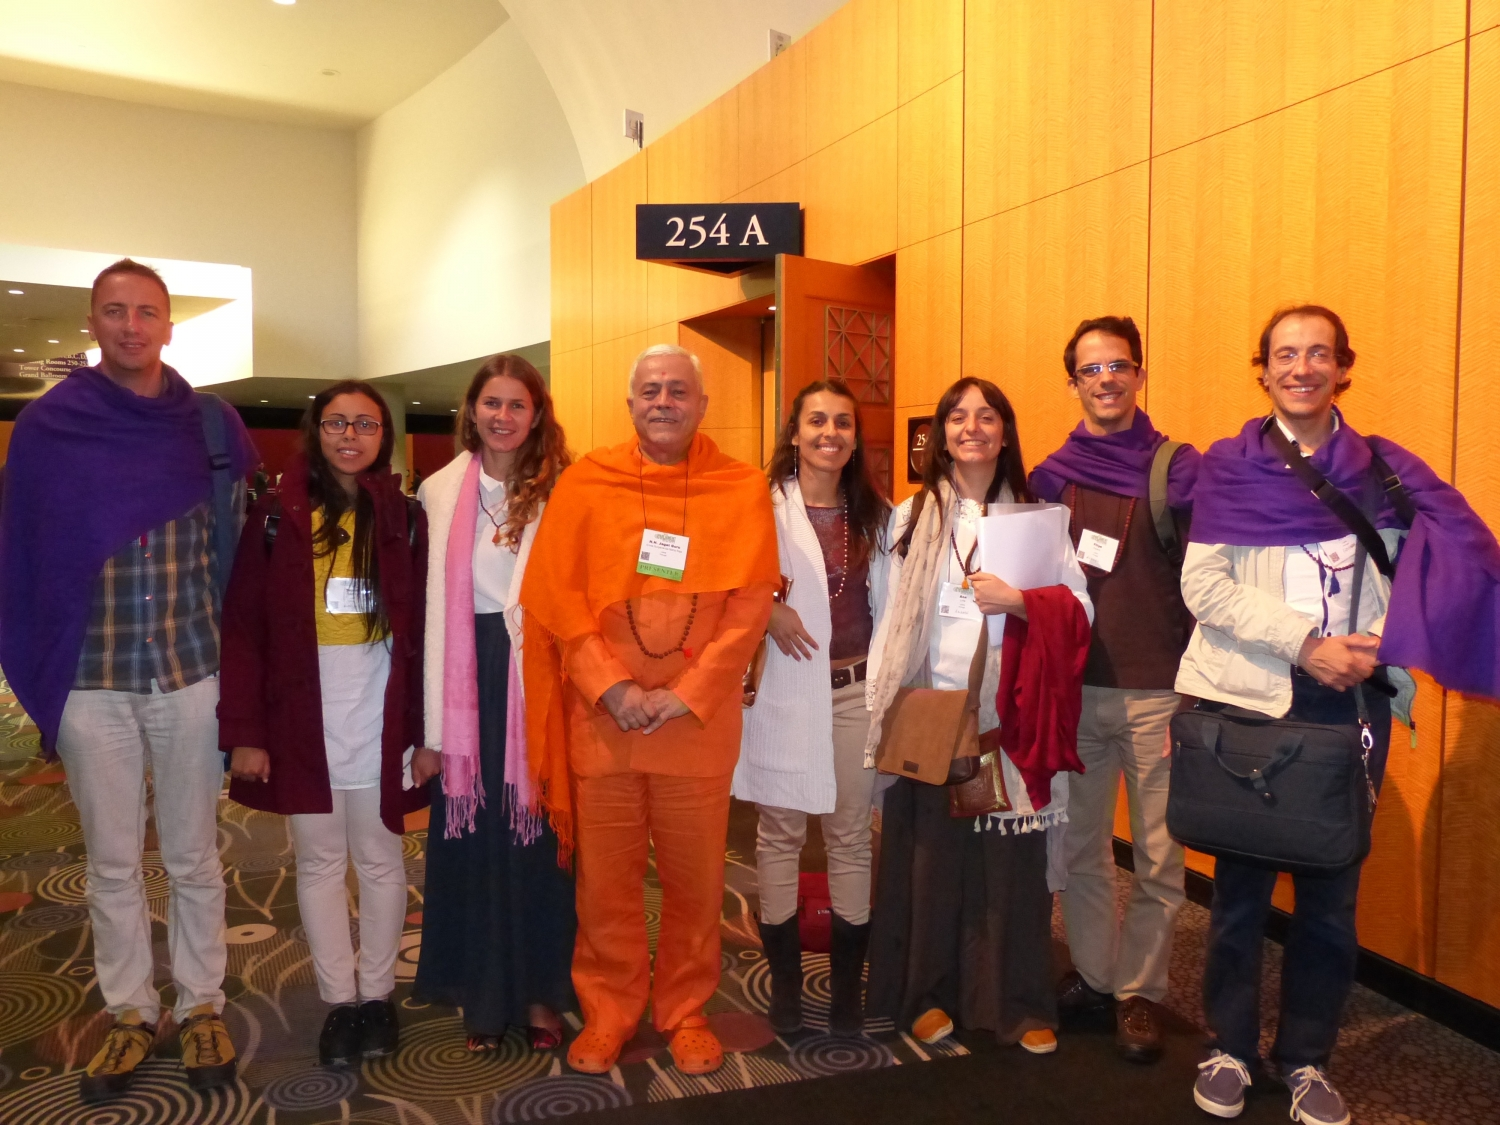 Parliament of the World's Religions 2015 - USA, Salt Lake City (...)